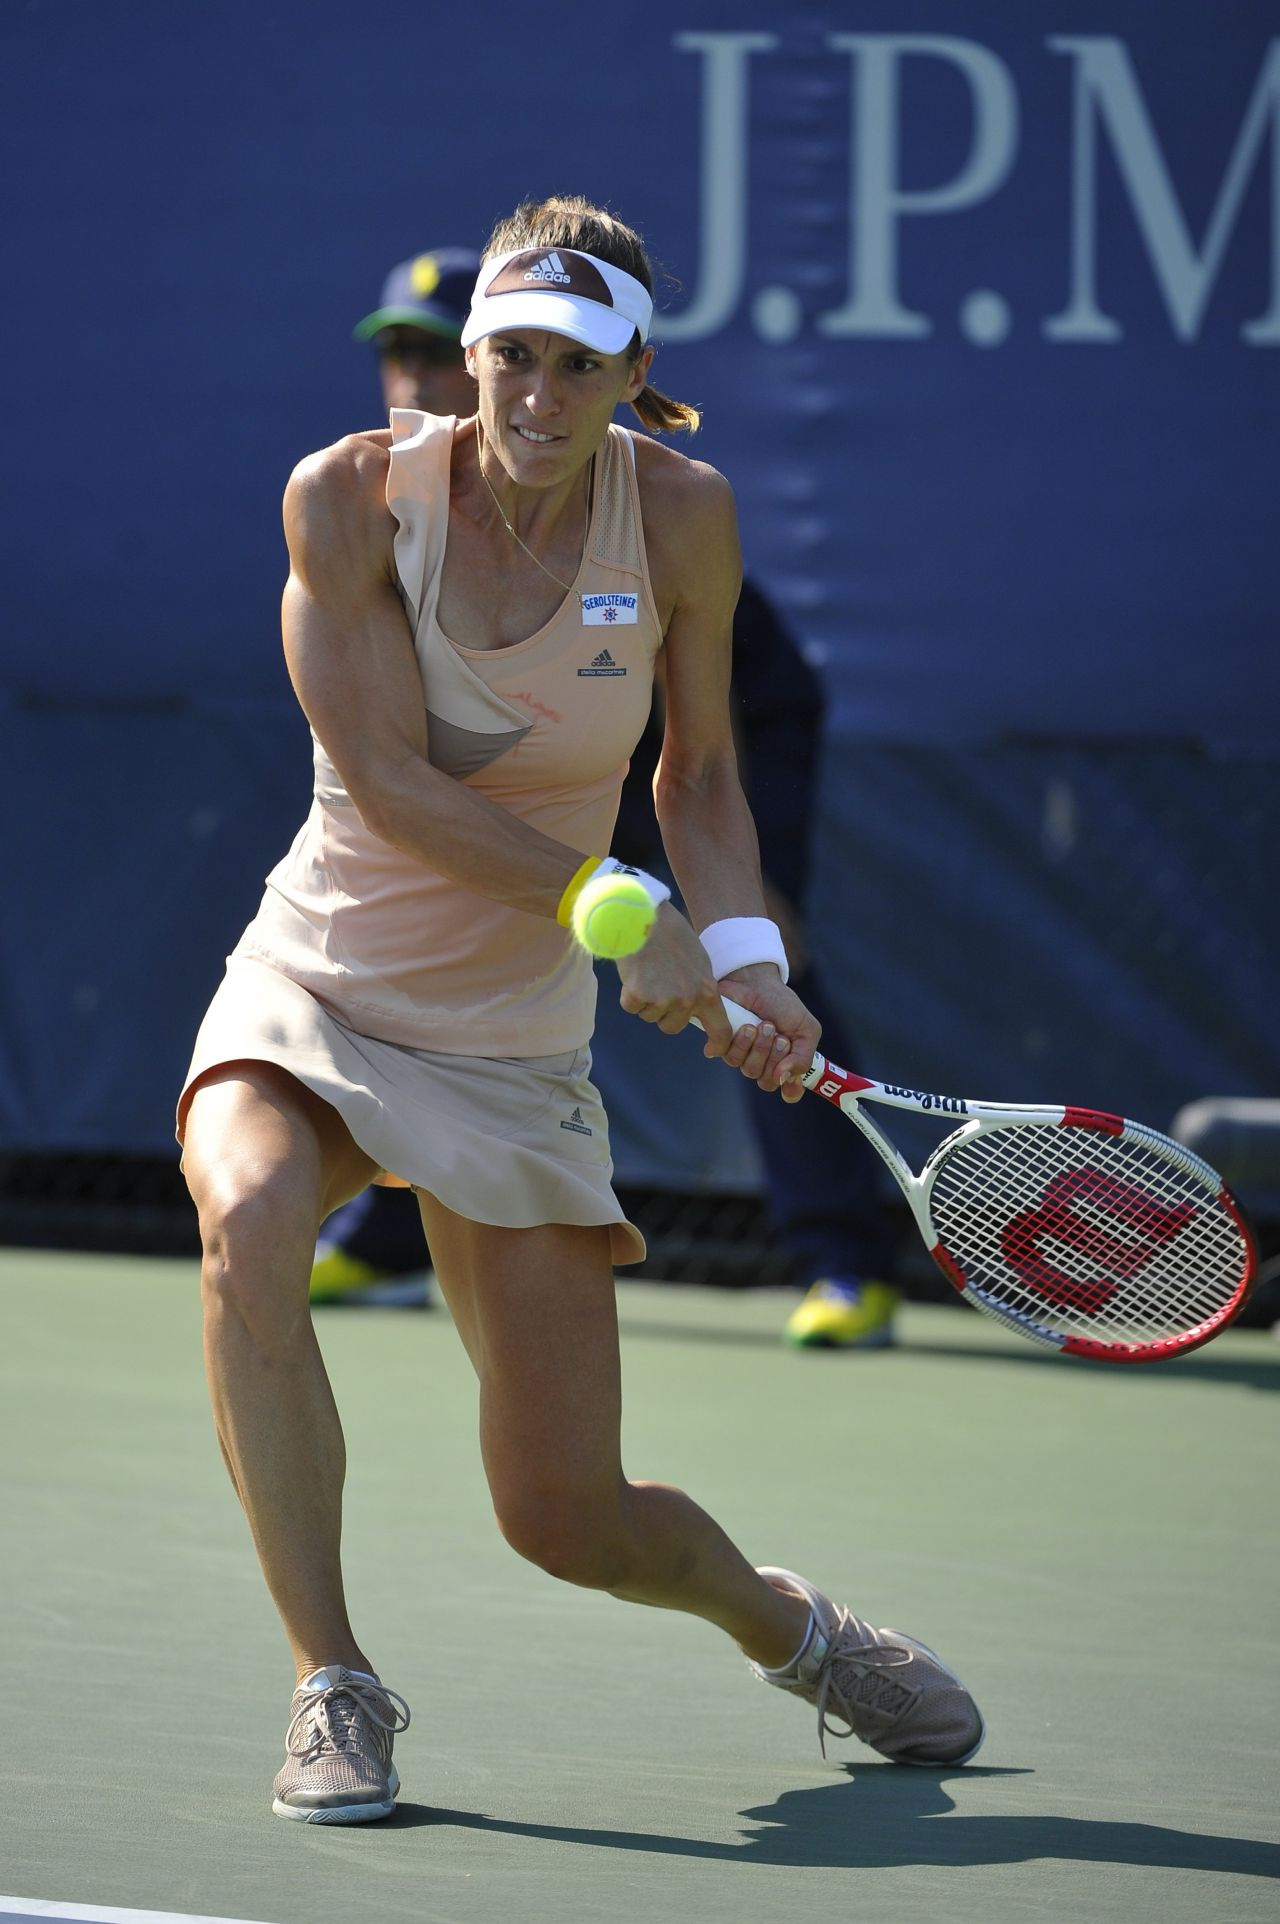 Andrea Petkovic – 2014 U.S. Open Tennis Tournament in New York City – 2nd Round